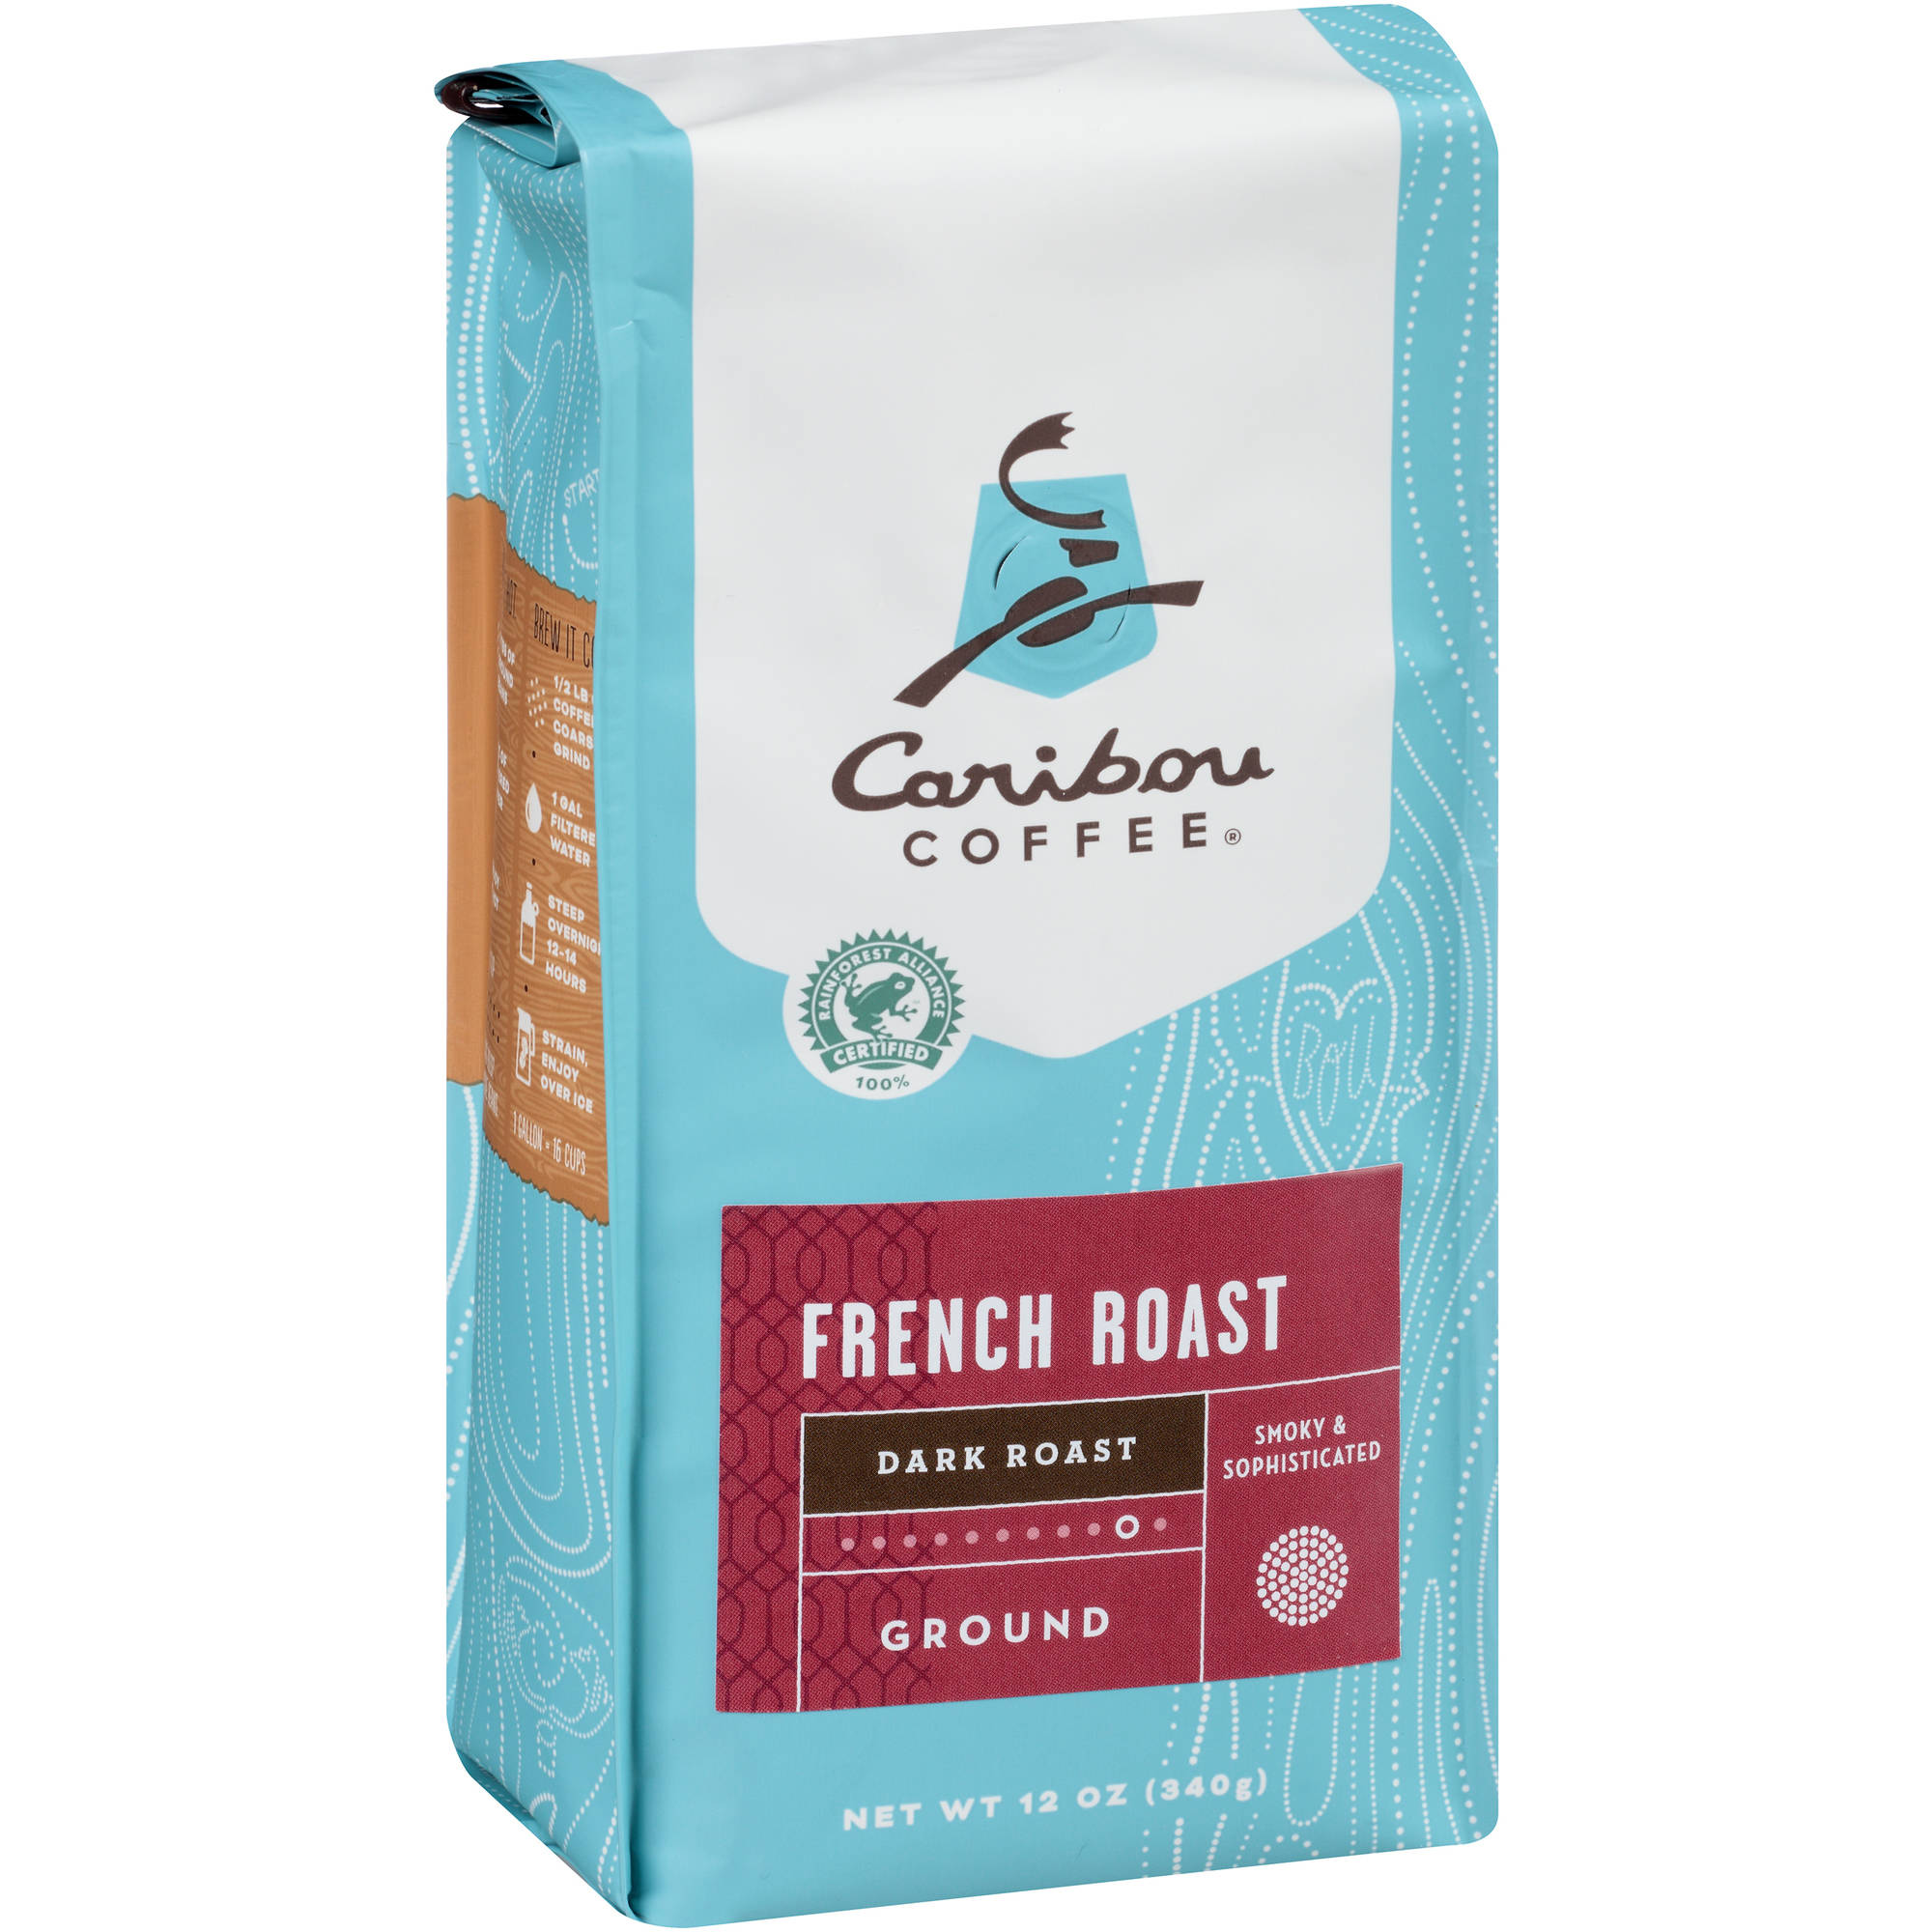 Caribou Coffee French Roast Dark Roast Ground Coffee, 12 oz